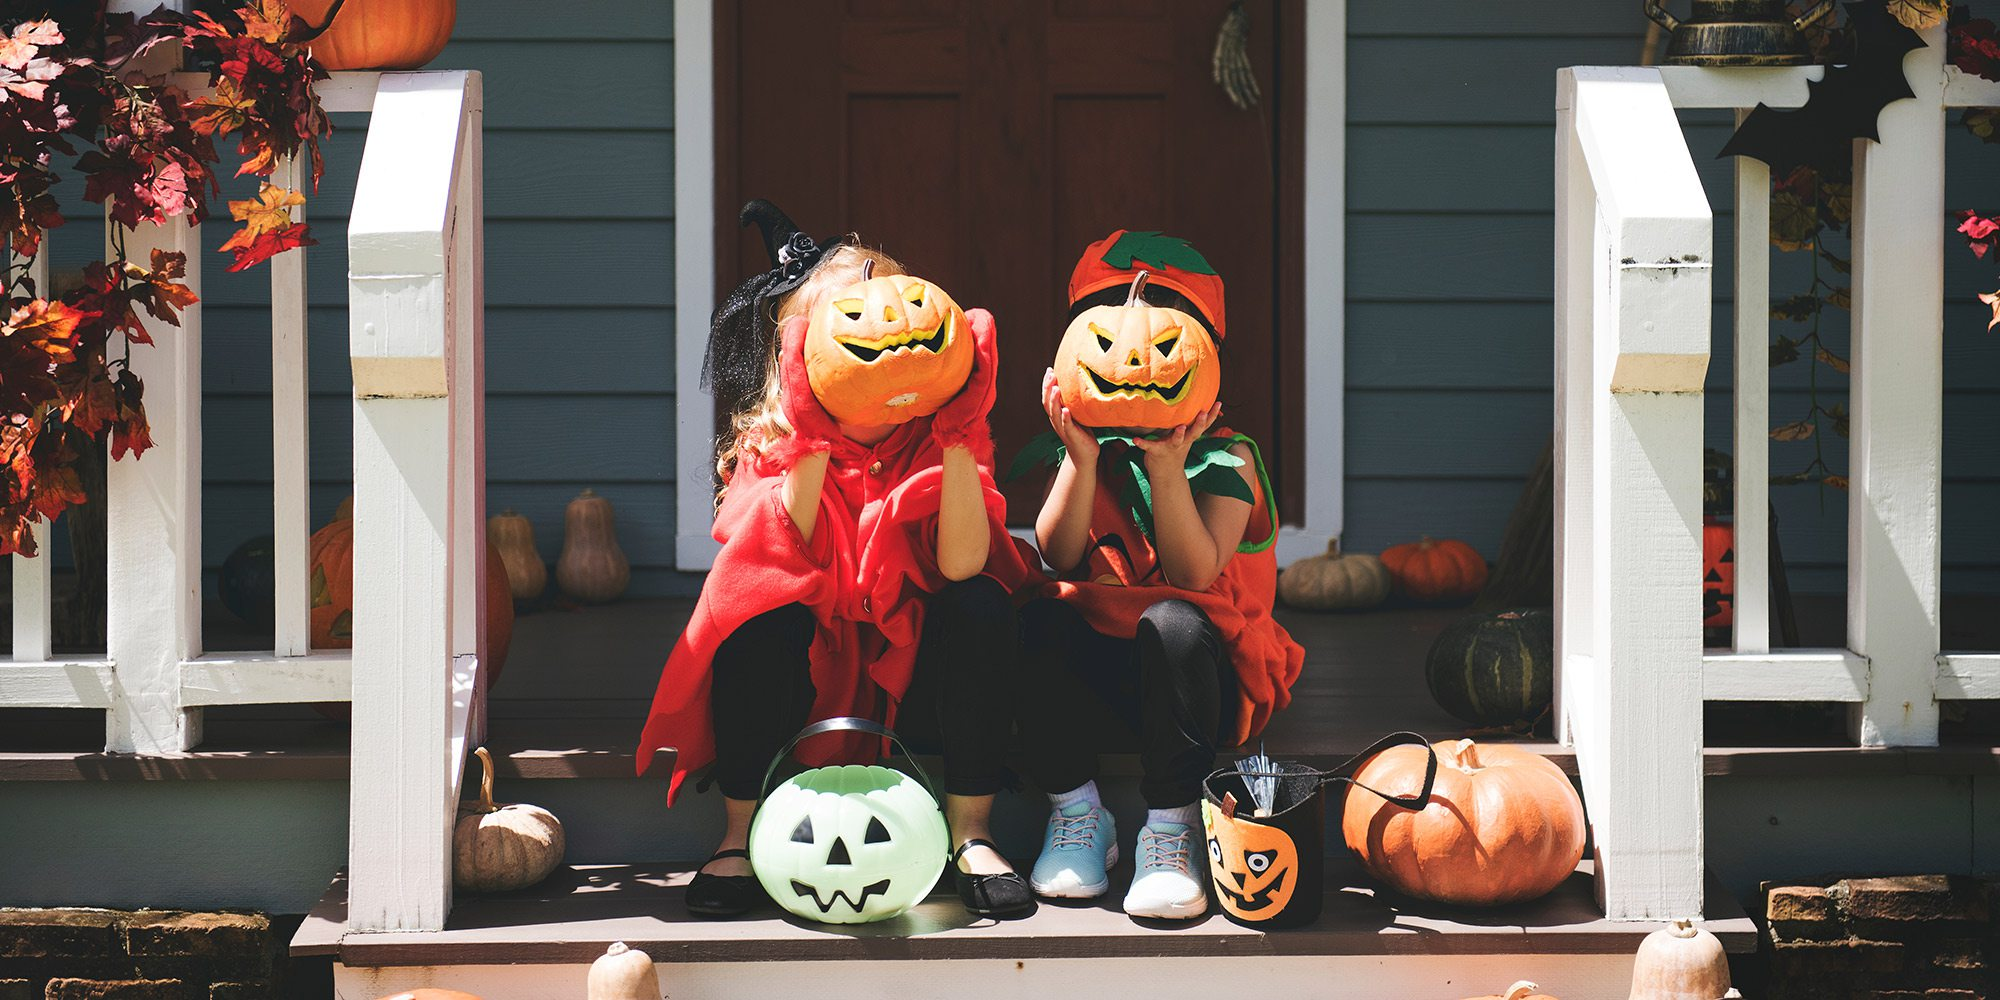 Two little kids in Halloween costumes showing off their carved pumpkins